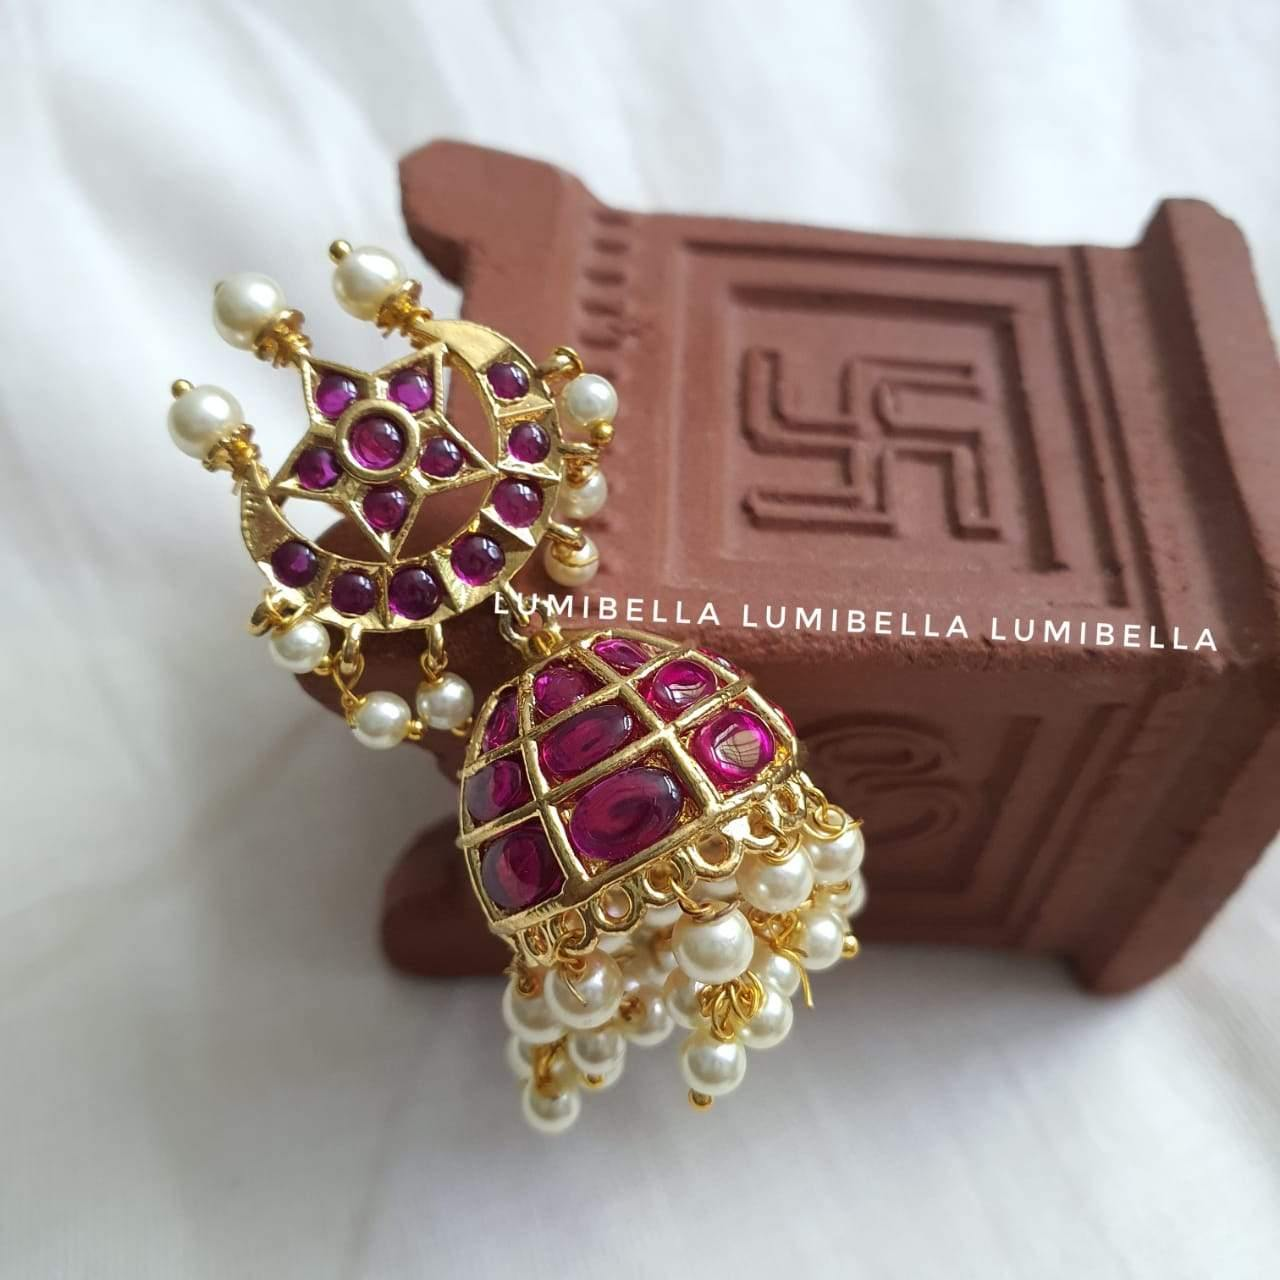 kemp jhumki earrings with pearls